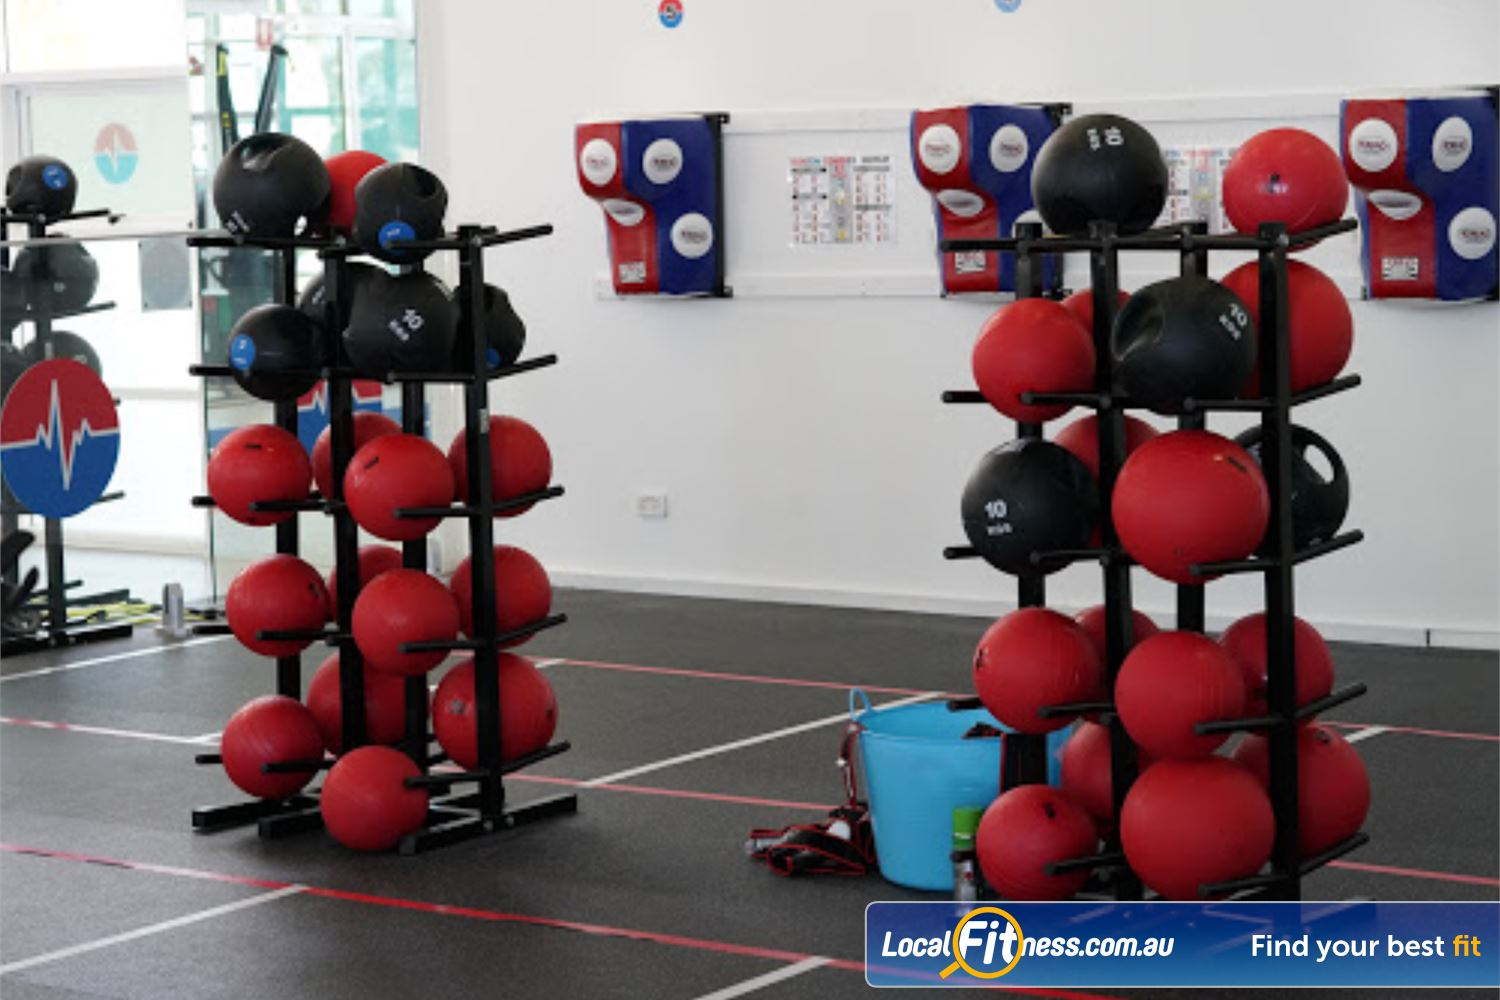 North Ryde Fitness & Aquatic North Ryde Our North Ryde gym is fully equipped for HIIT and functional training.